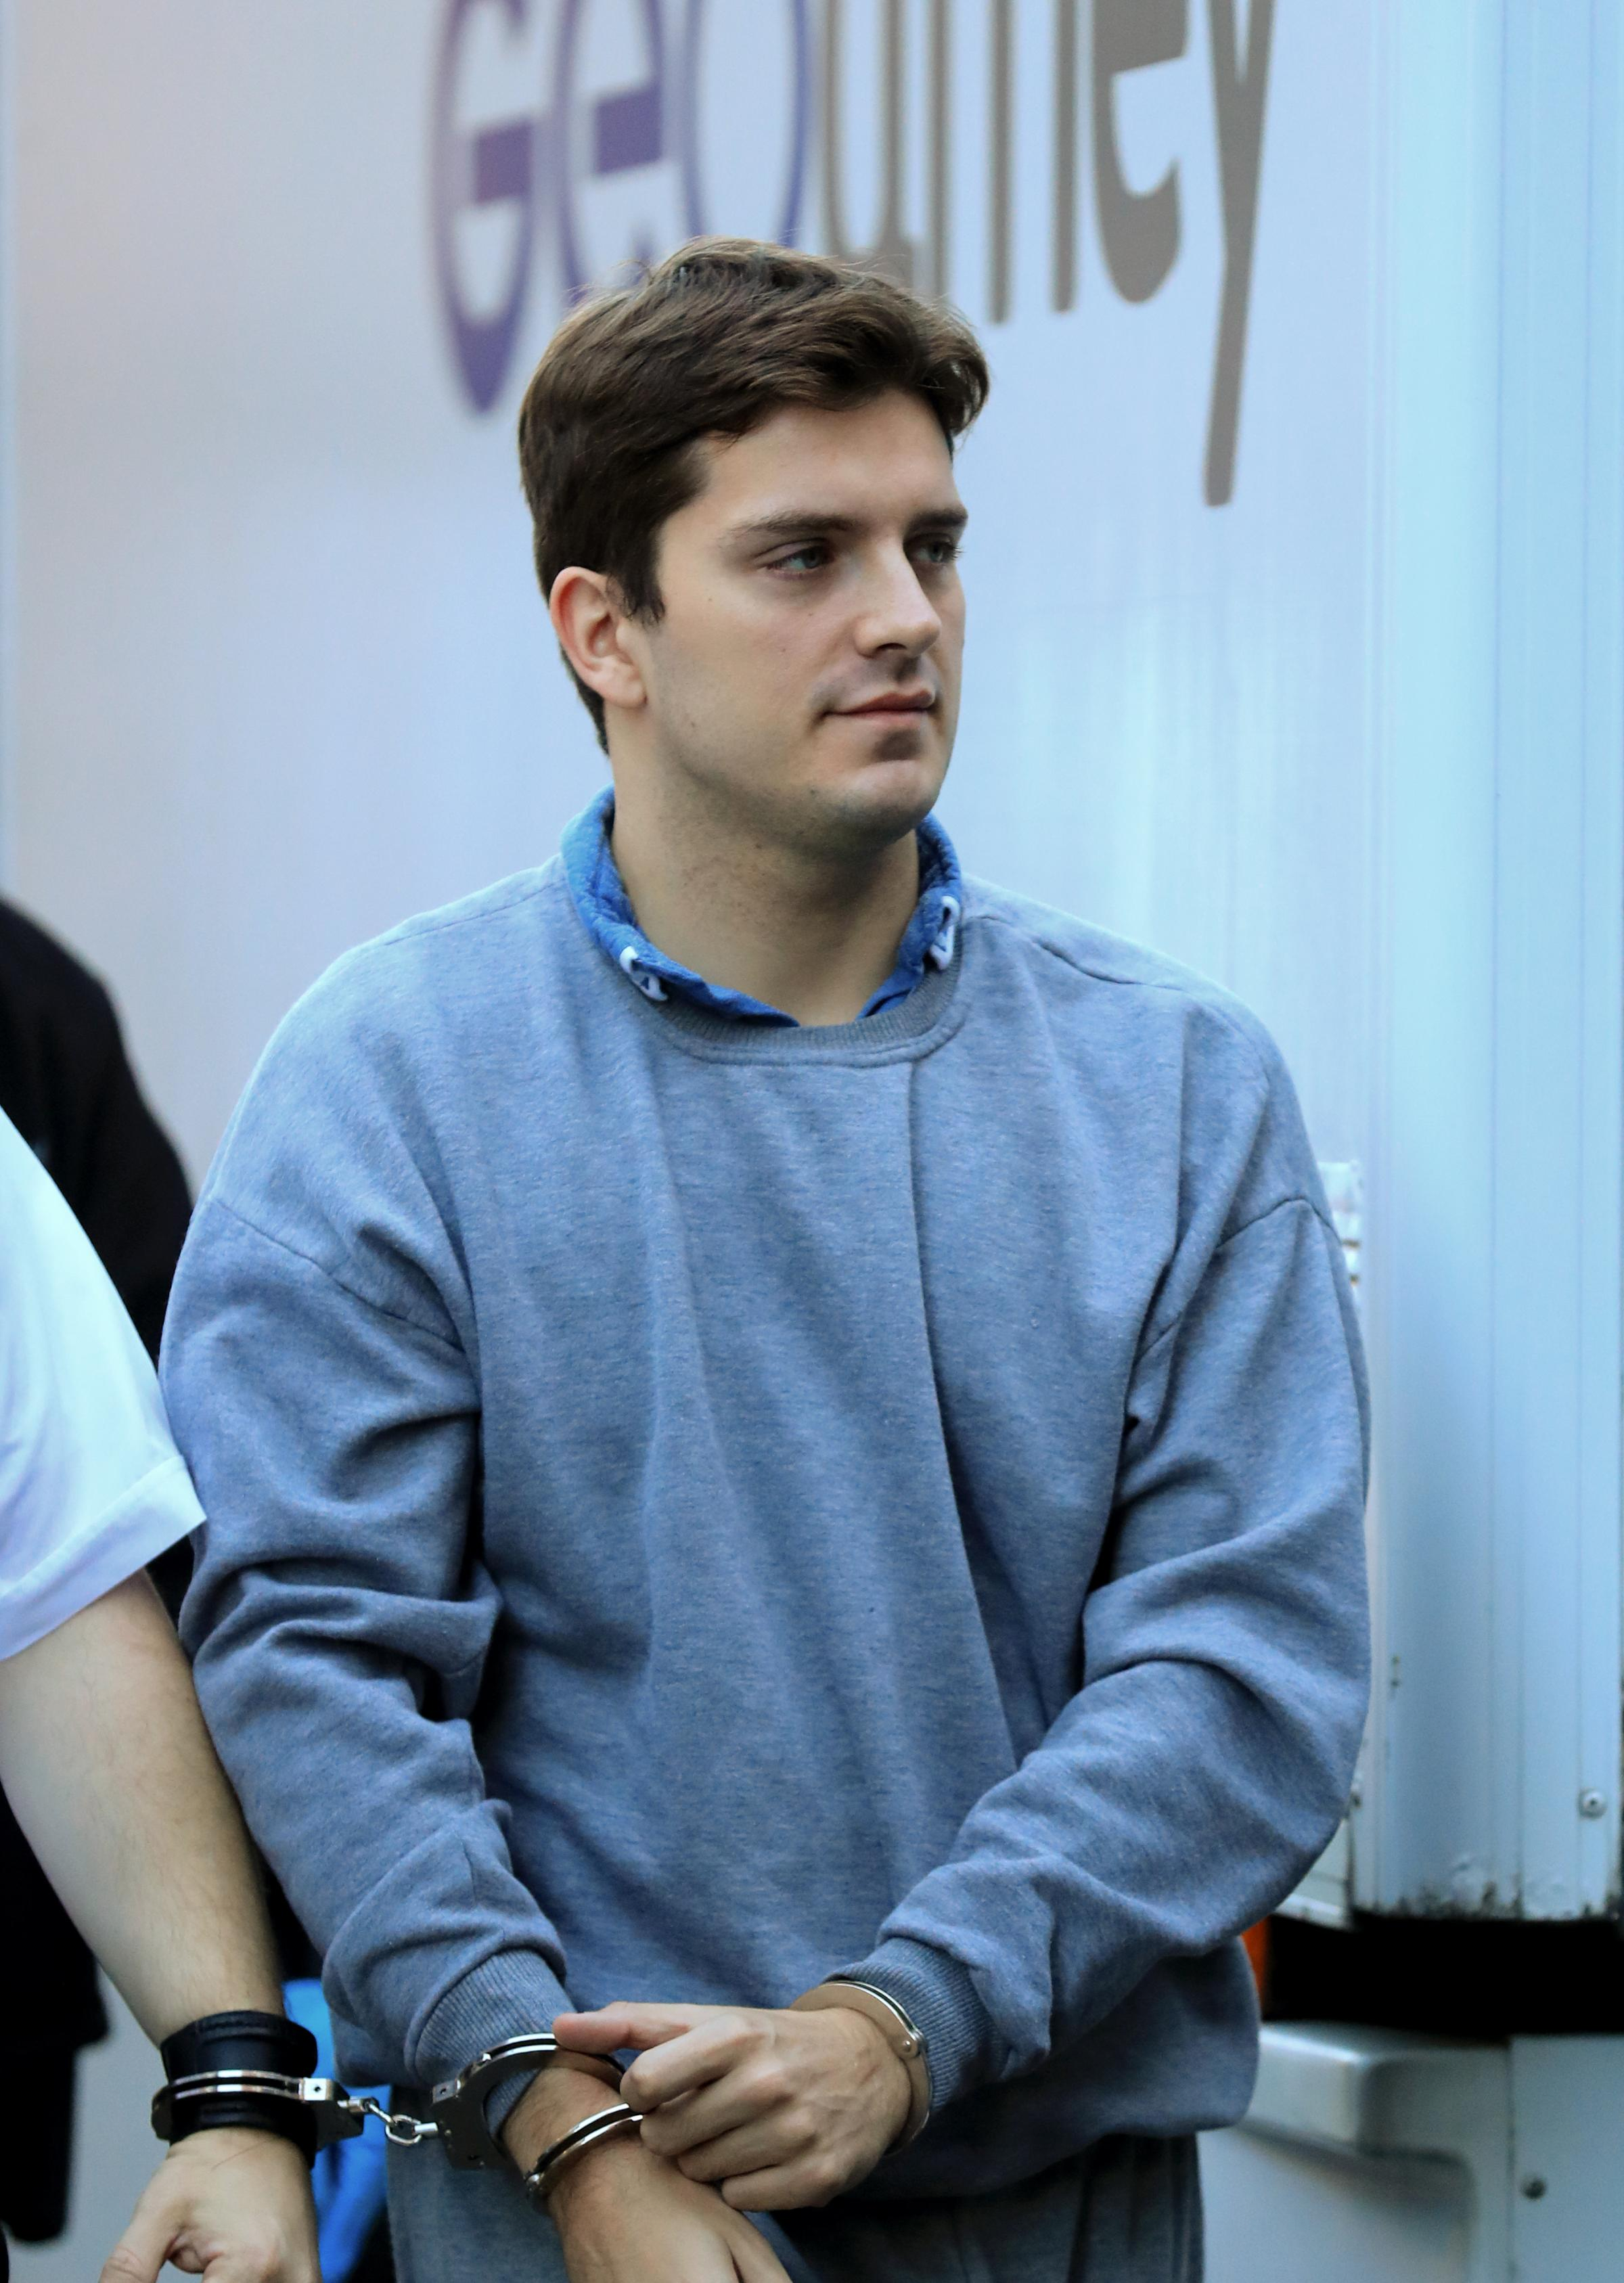 Hairdresser Due To Be Sentenced For Deliberately Infecting Lovers With Hiv